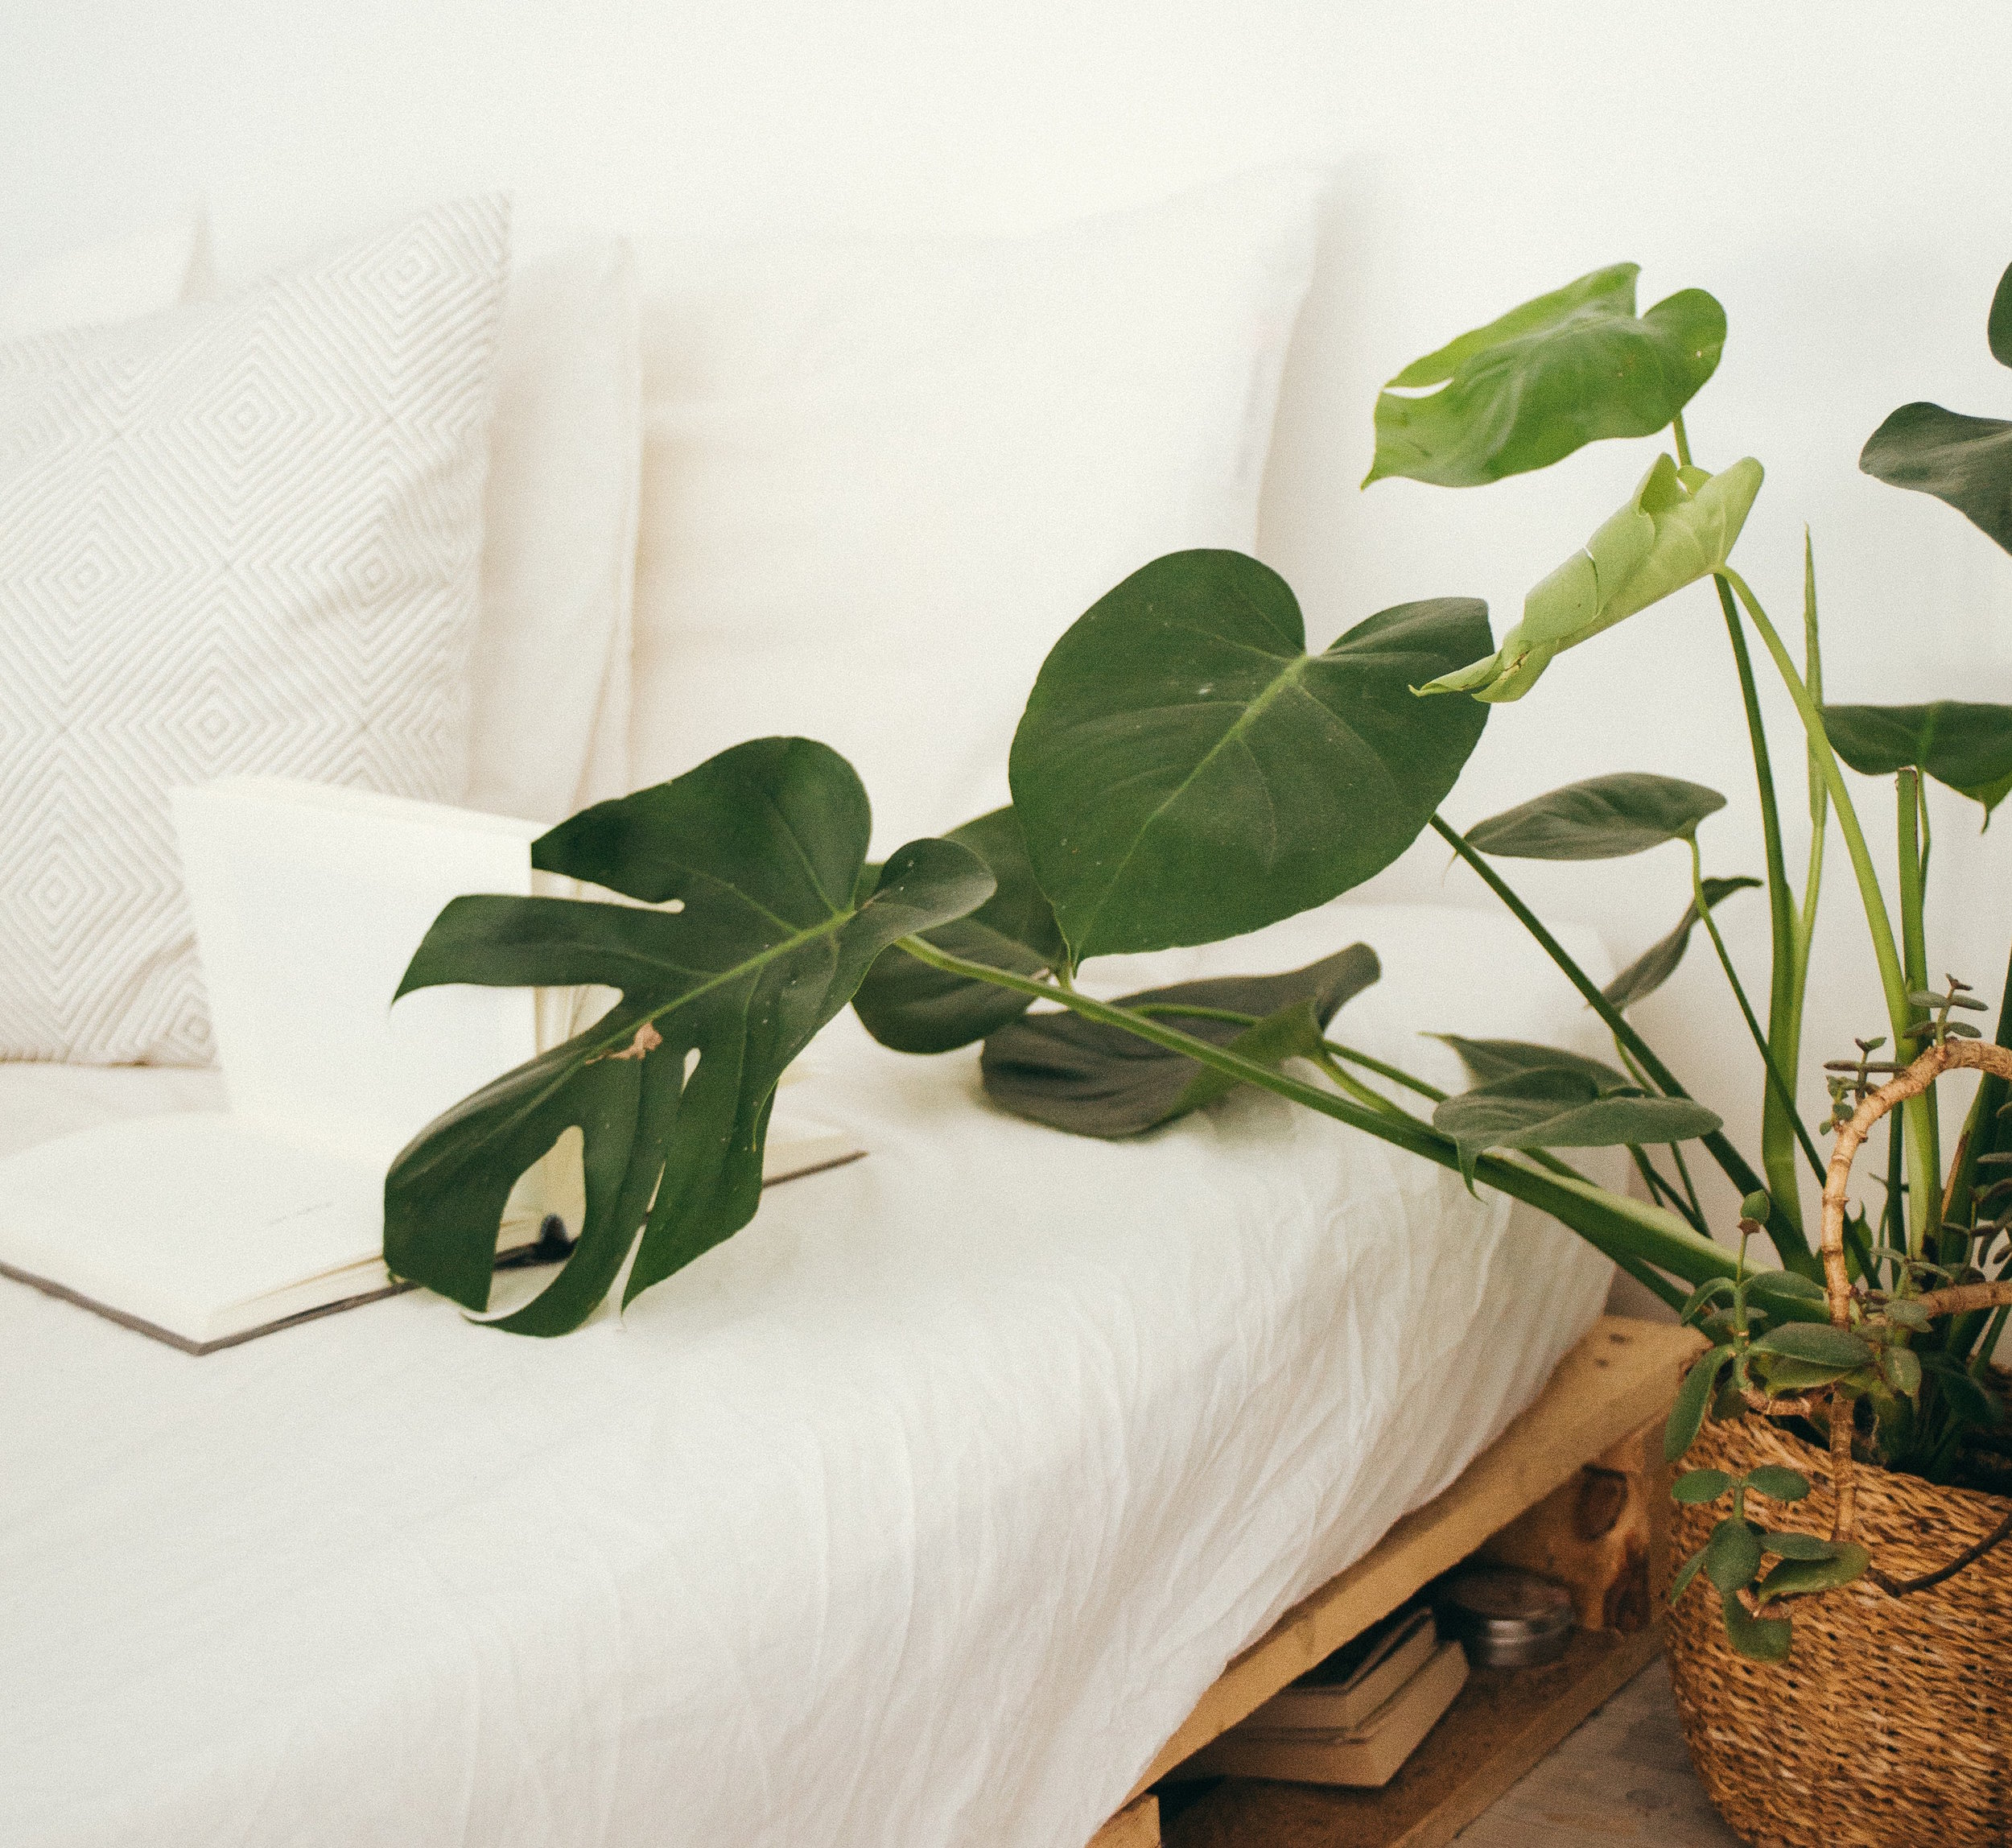 How to care for houseplants.jpg